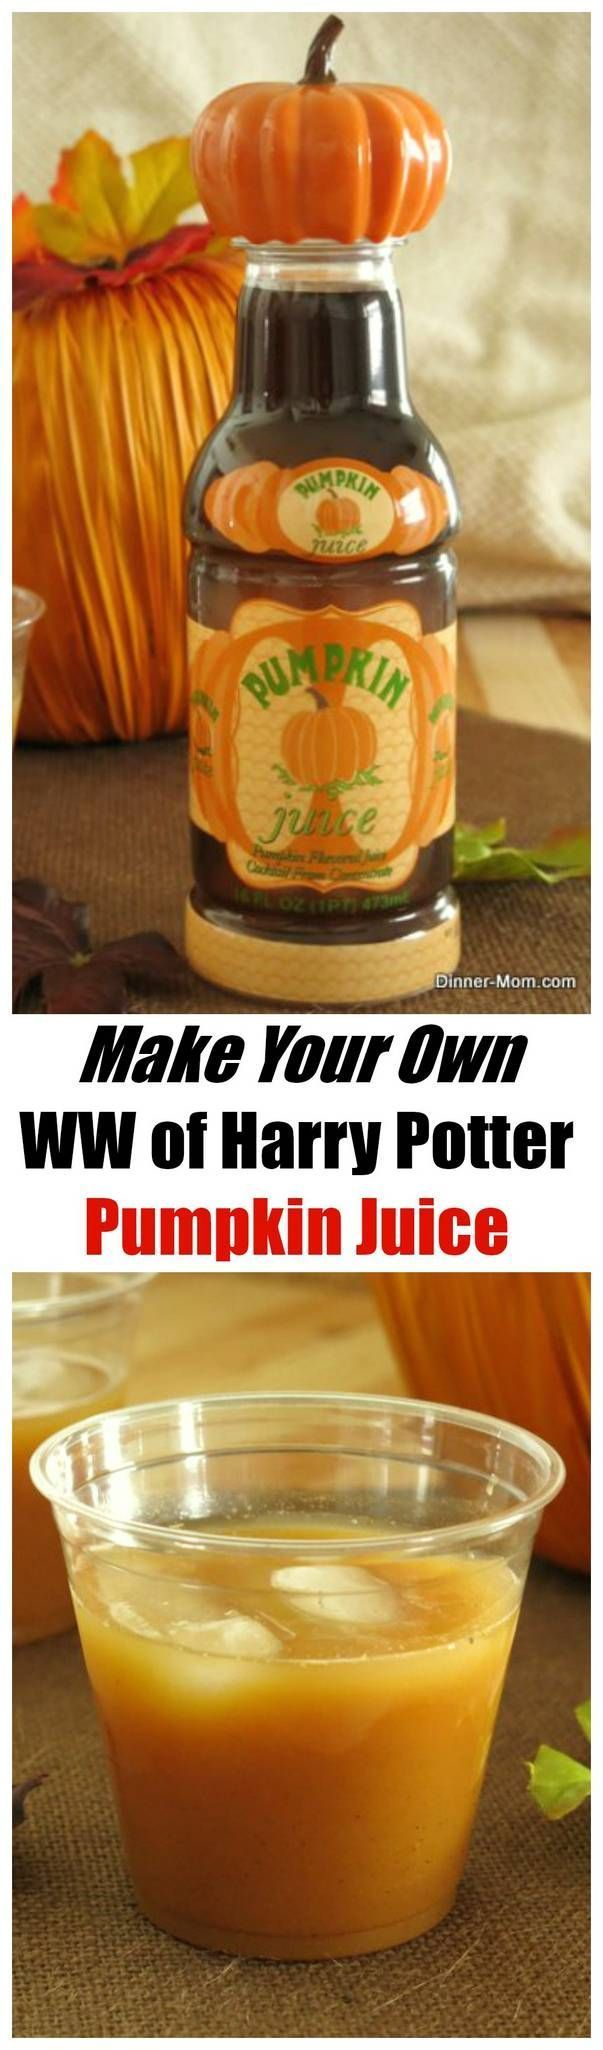 Easy CopyCat Recipe for Harry Potter Pumpkin Juice - just like you'd find at the Wizarding World at Universal Studios.